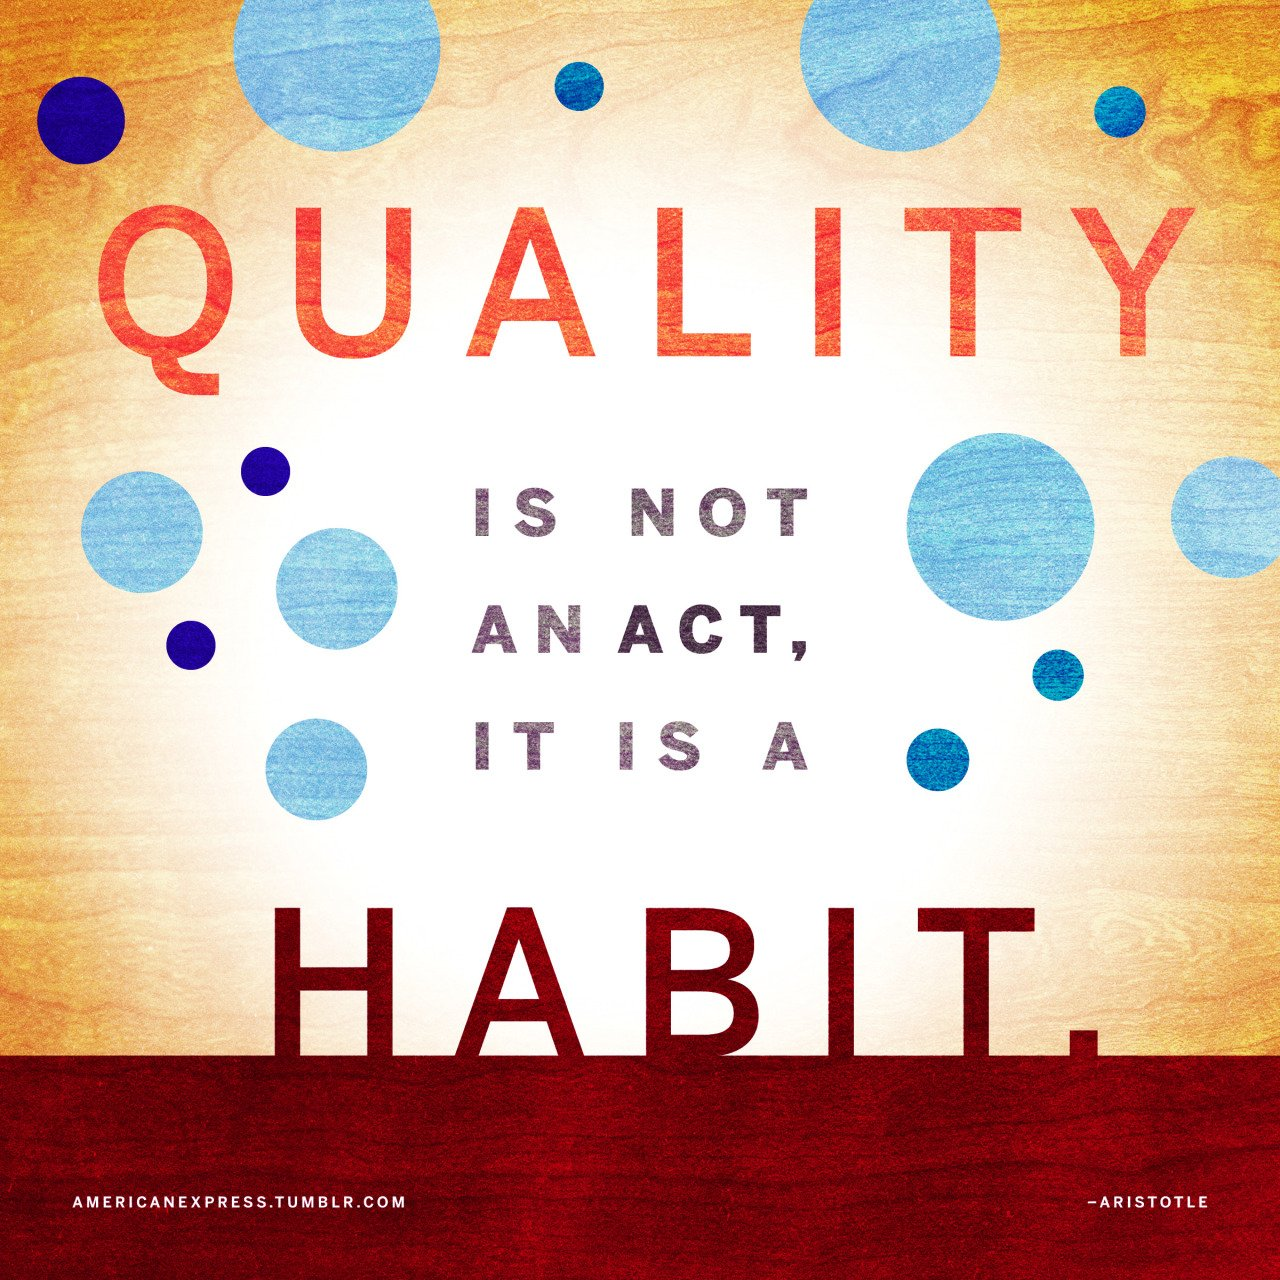 """Quality is not an act, it is a habit"" - Aristotle #ClientWork  https://t.co/6Tqx6pN84S https://t.co/ywz2NjulPF"